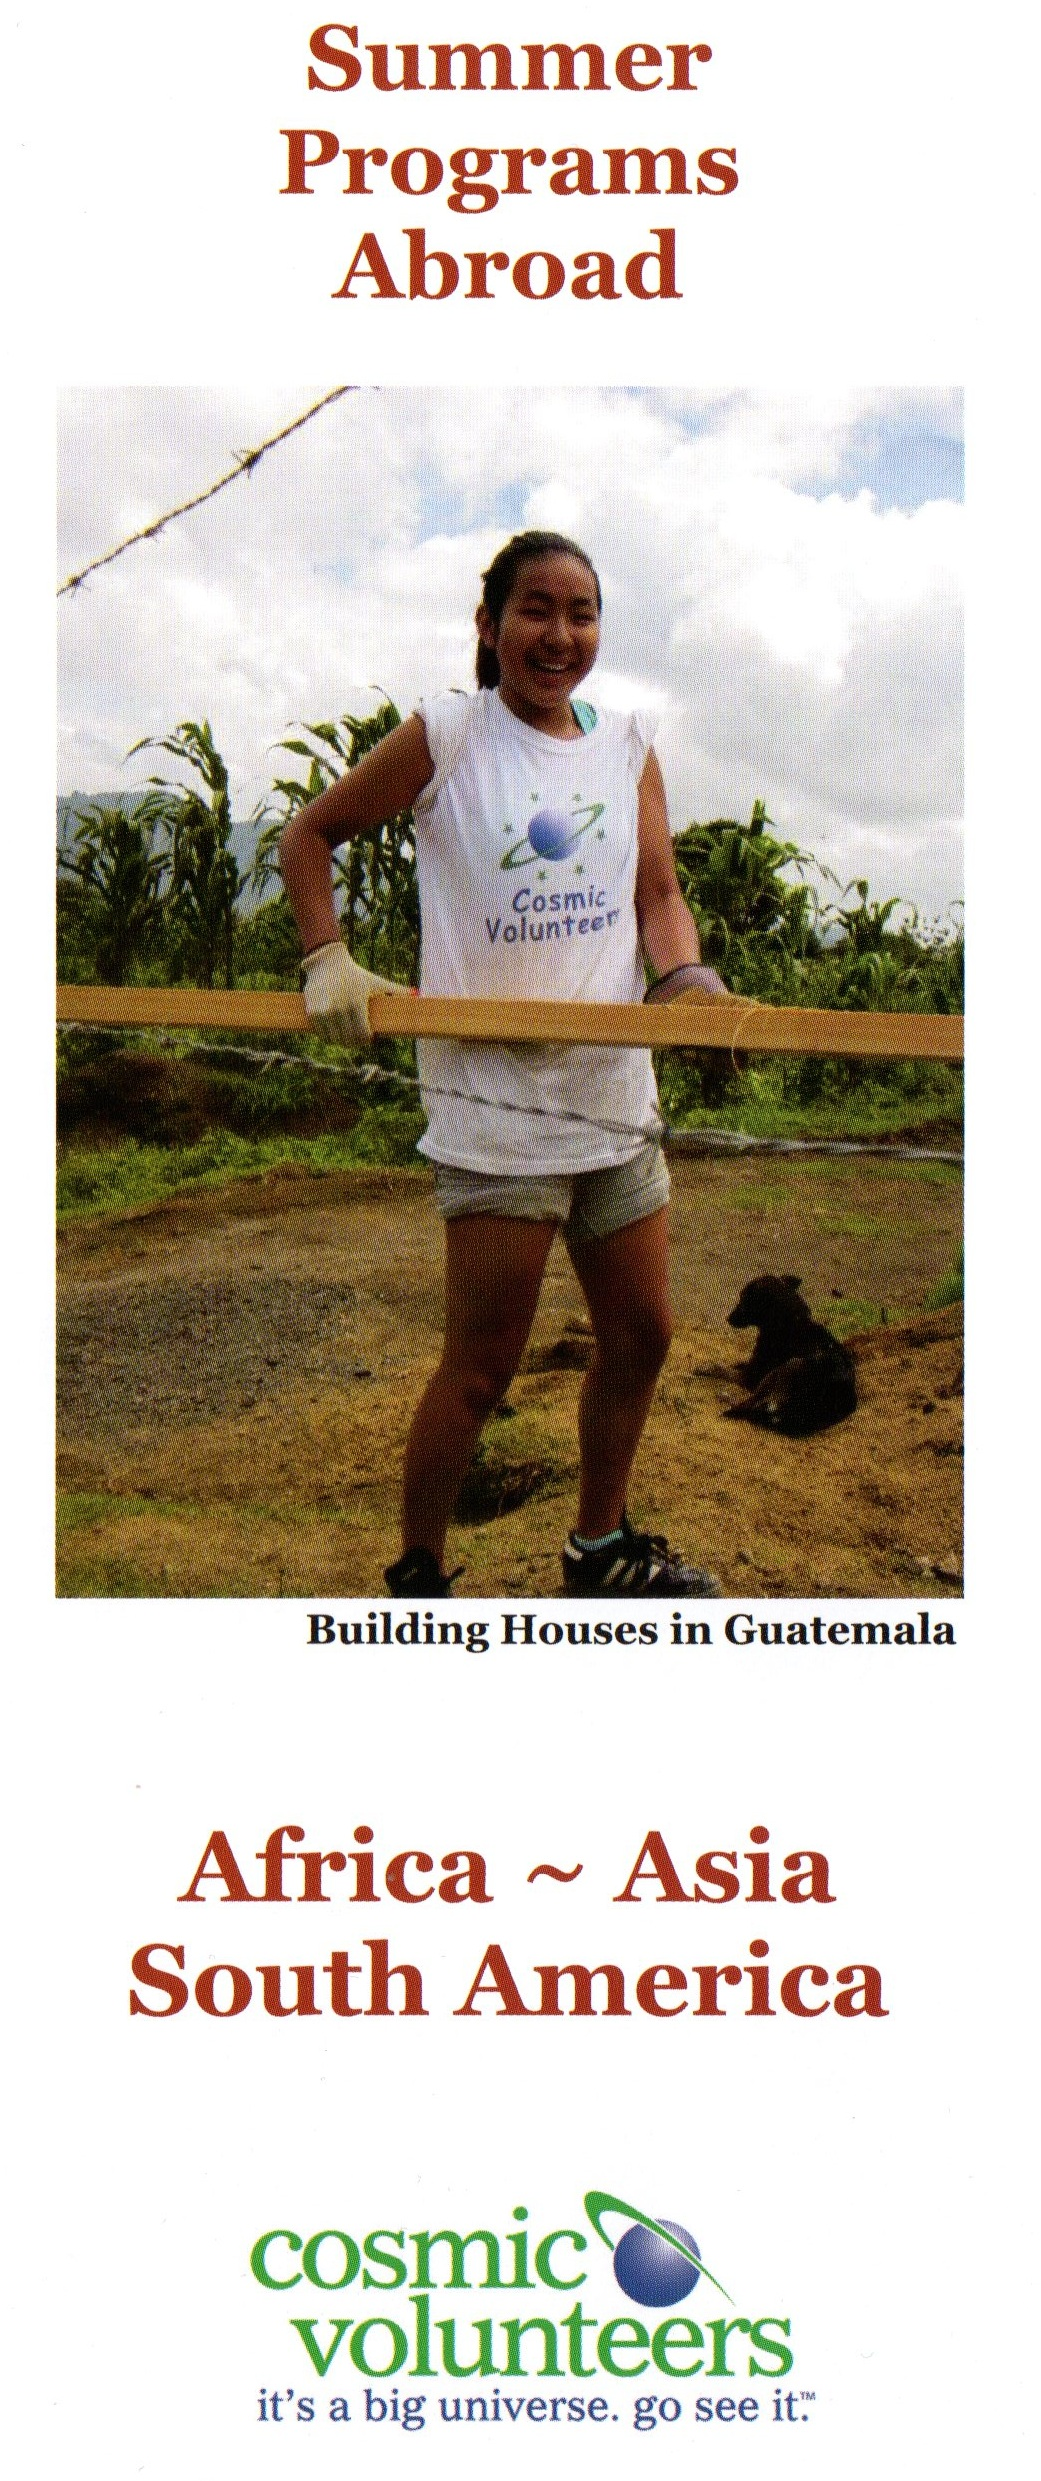 Volunteer to Build Houses in Latin America